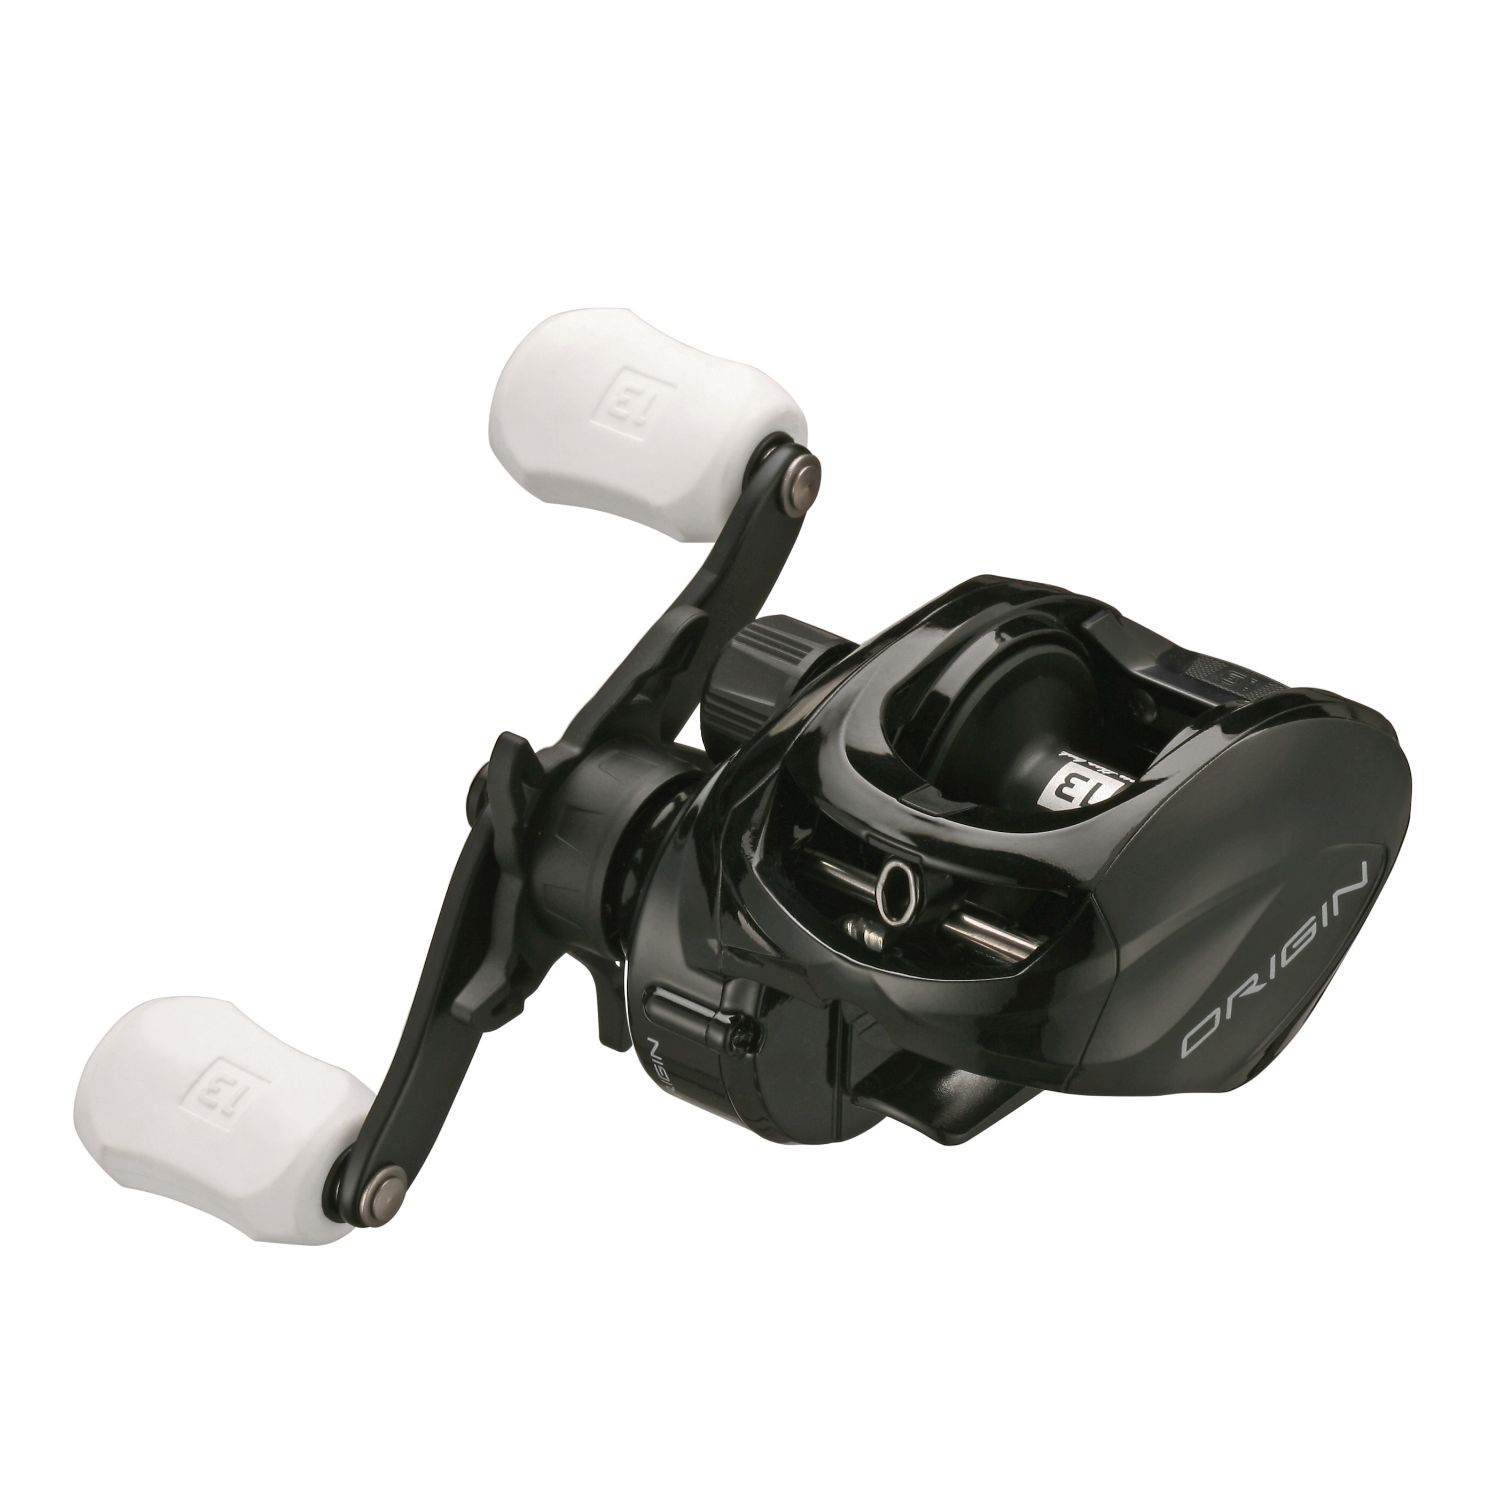 13 Fishing ORIGIN A Baitcast Reel 6.6:1 LH